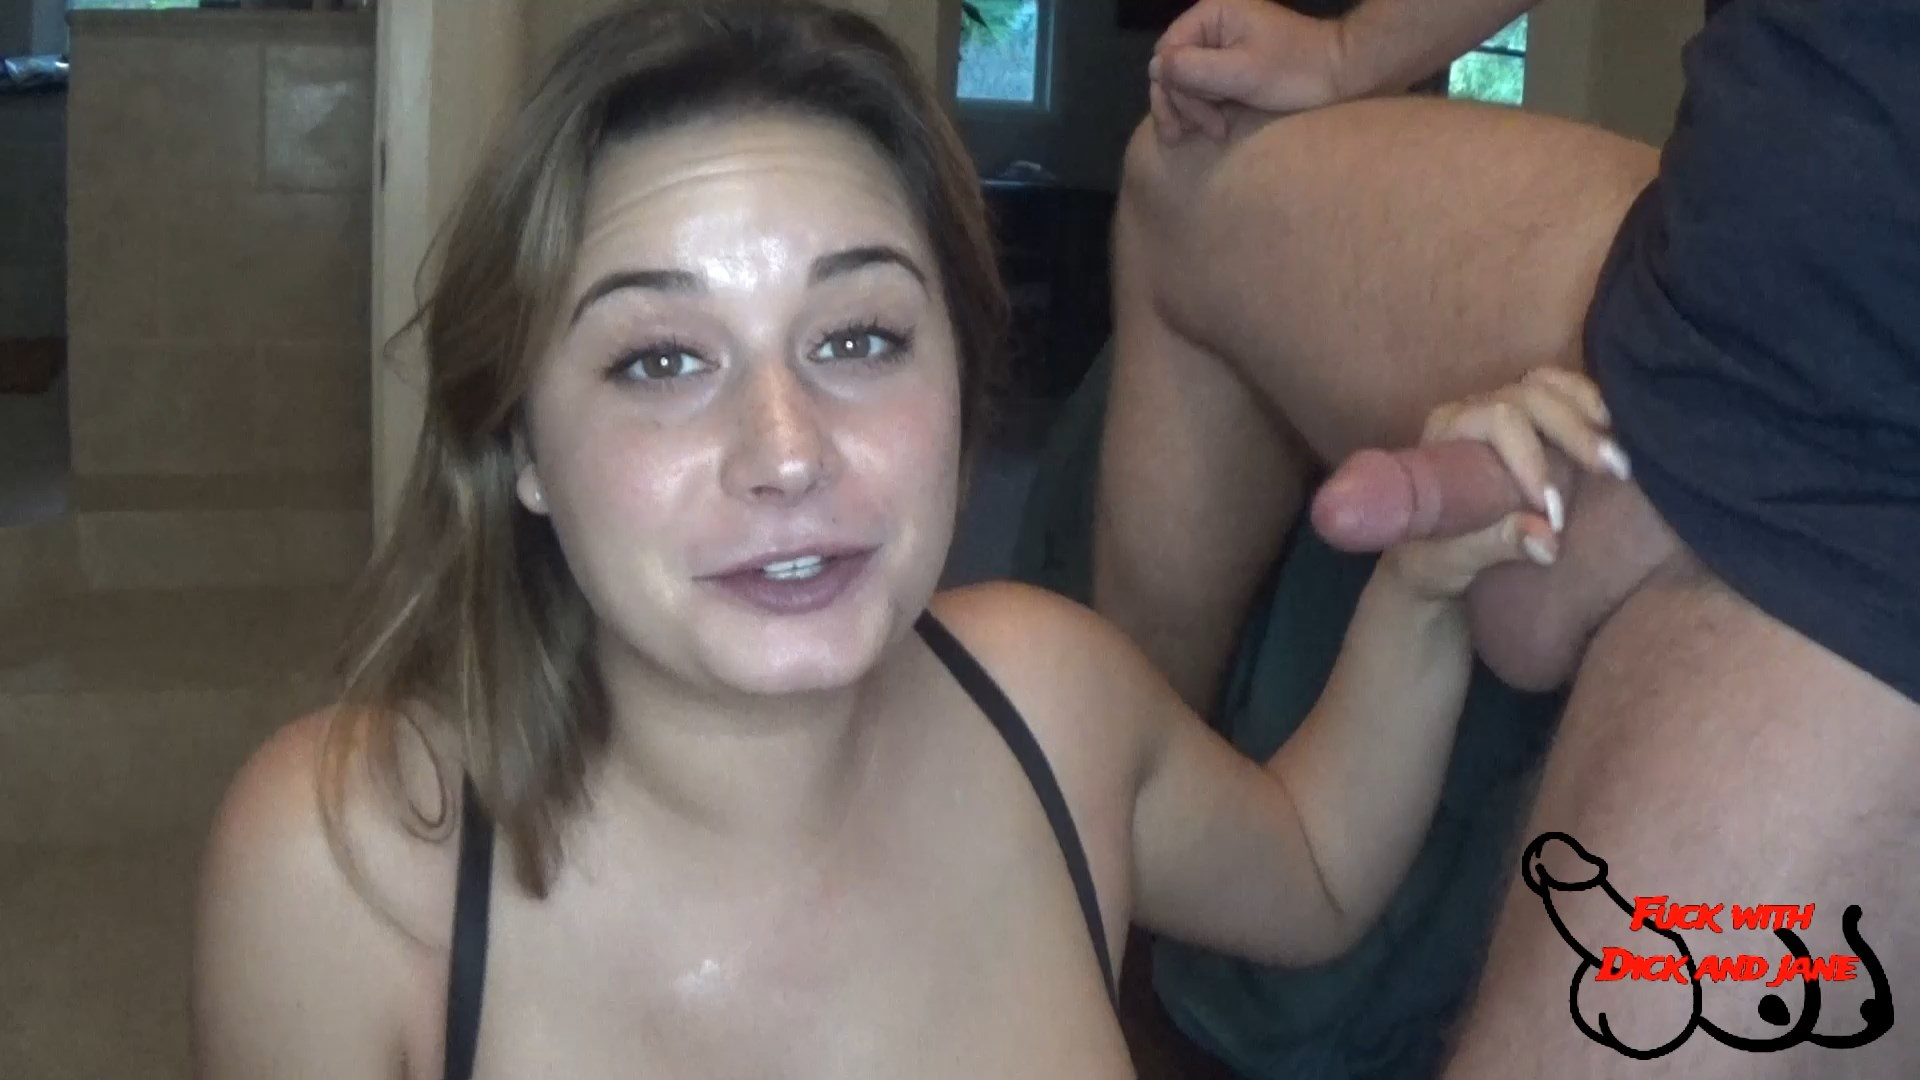 Fuck w Dick and Jane - Mommy Sucks Your Bullyэs Cock